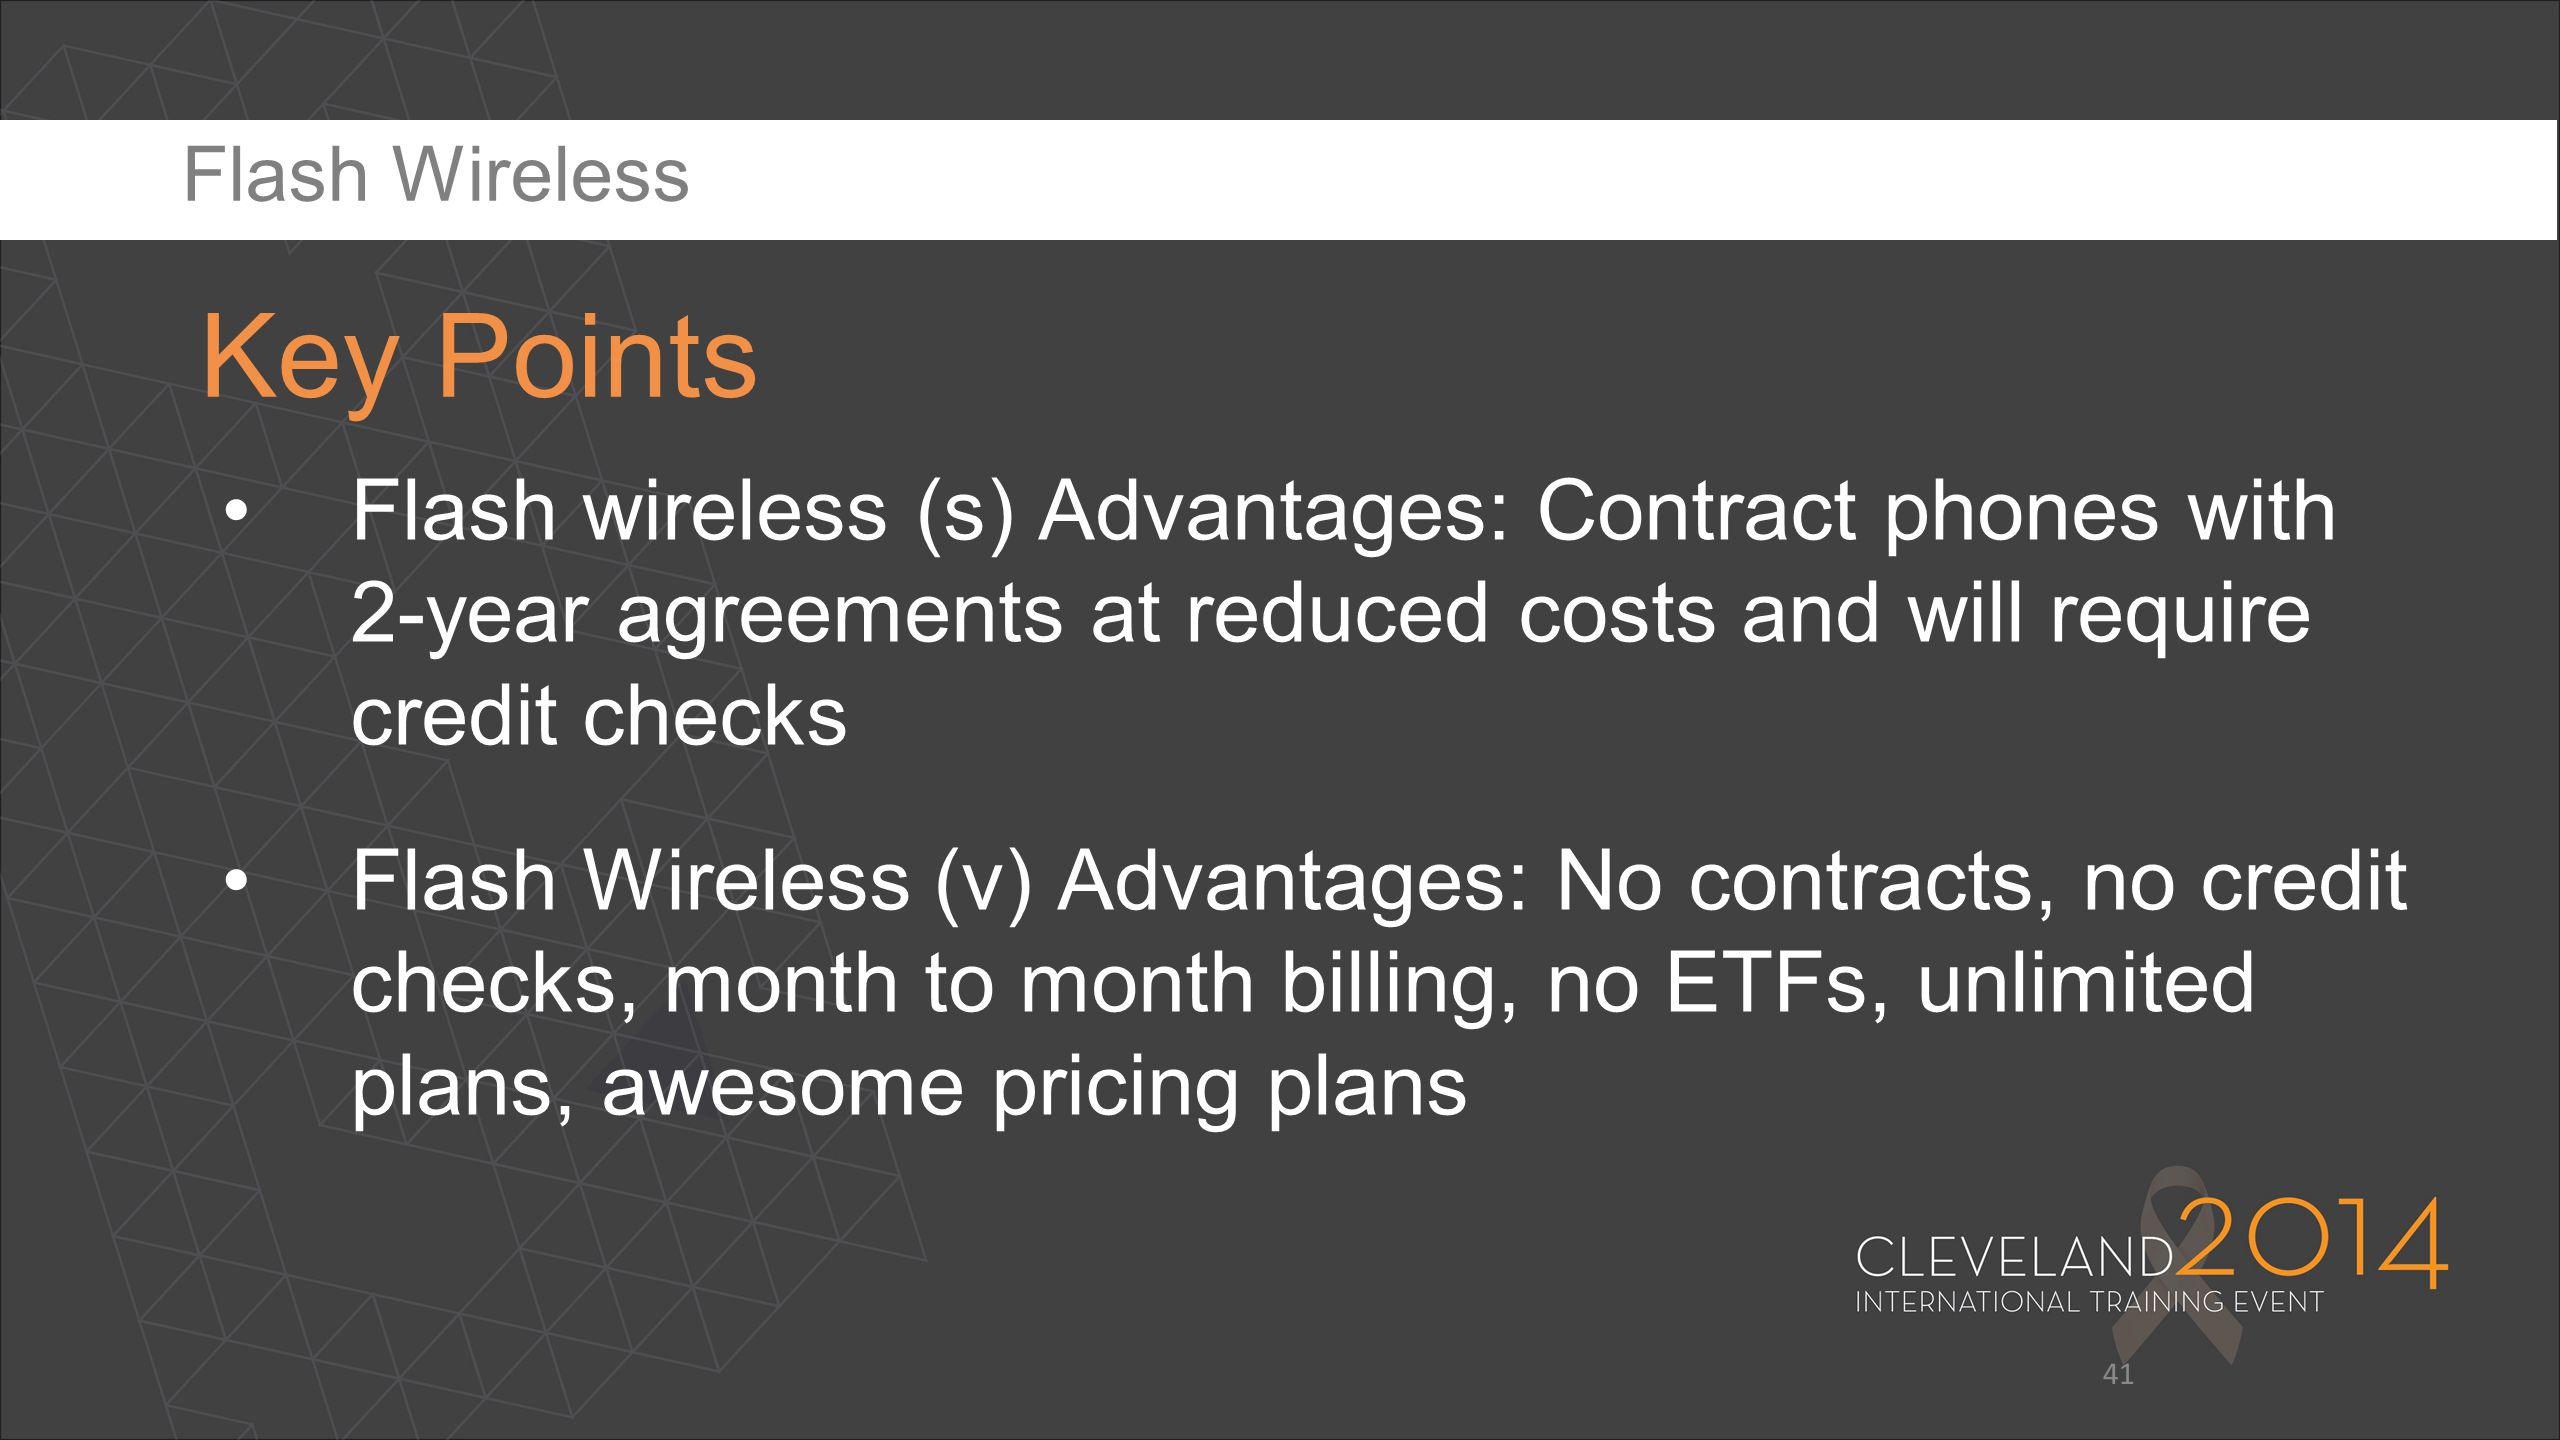 41 Flash wireless (s) Advantages: Contract phones with 2-year agreements at reduced costs and will require credit checks Flash Wireless (v) Advantages